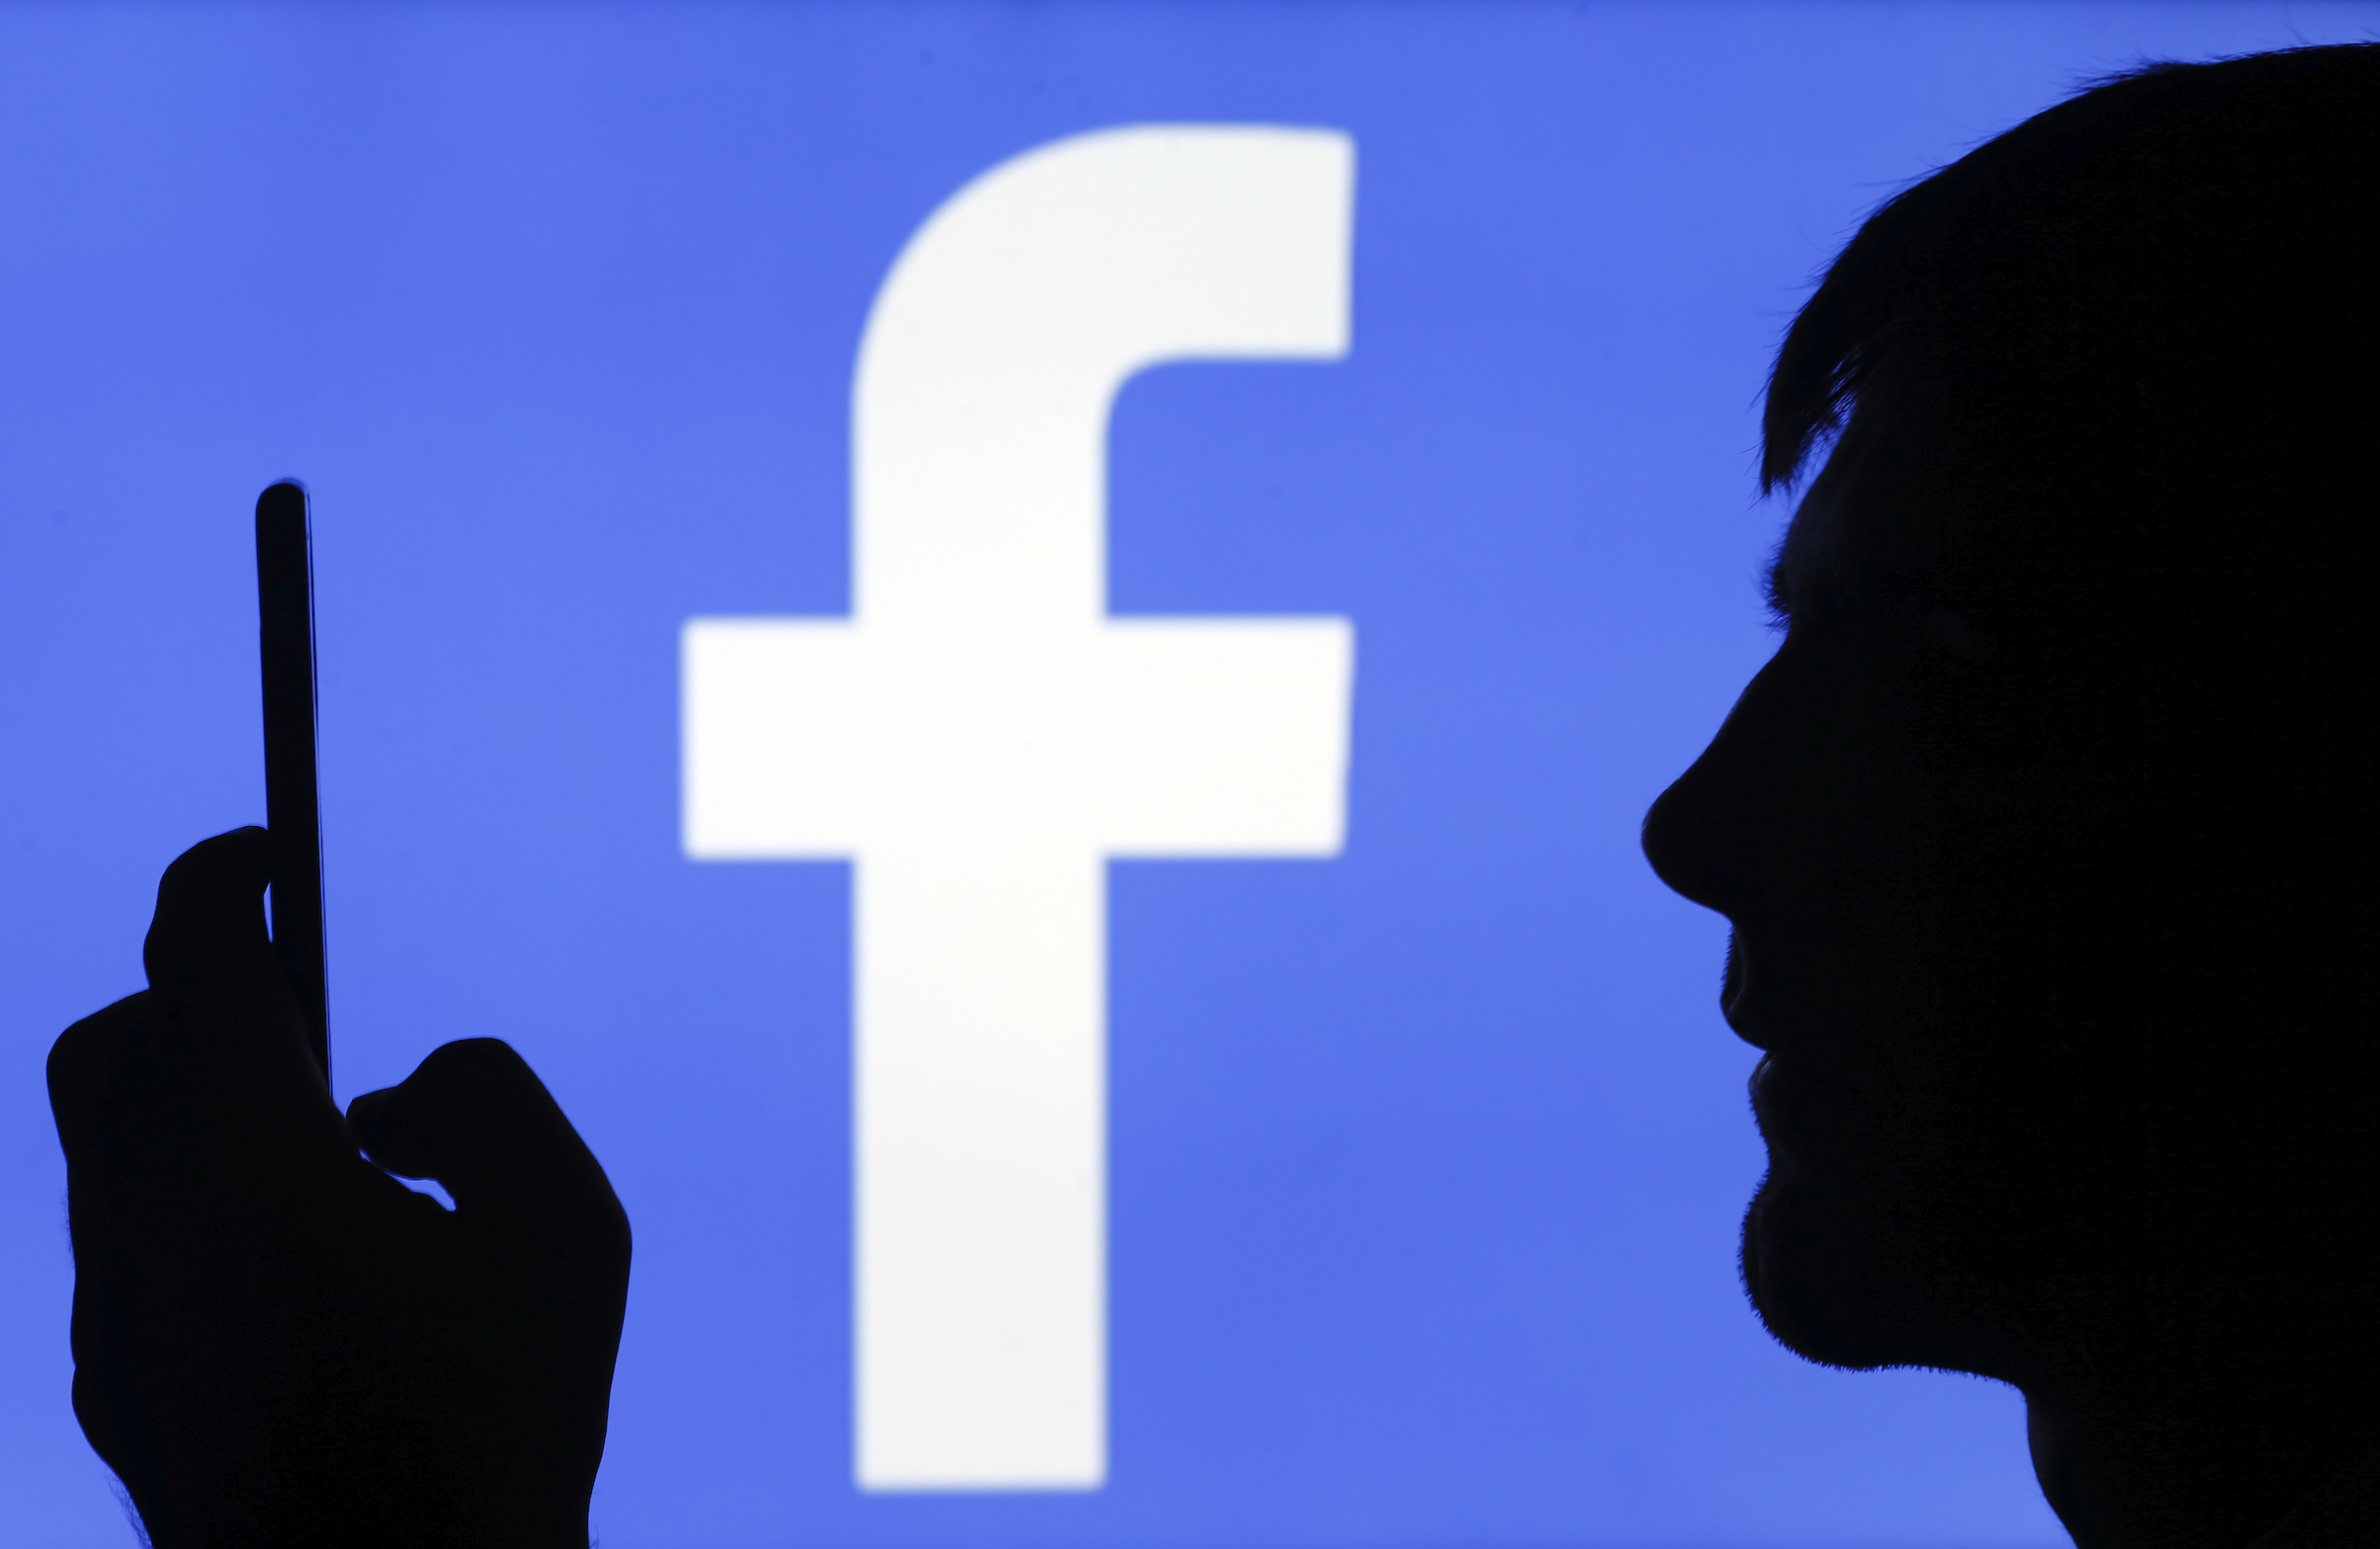 In this photo illustration, the Facebook logo is displayed on a TV screen on September 09, 2019 in Paris, France.